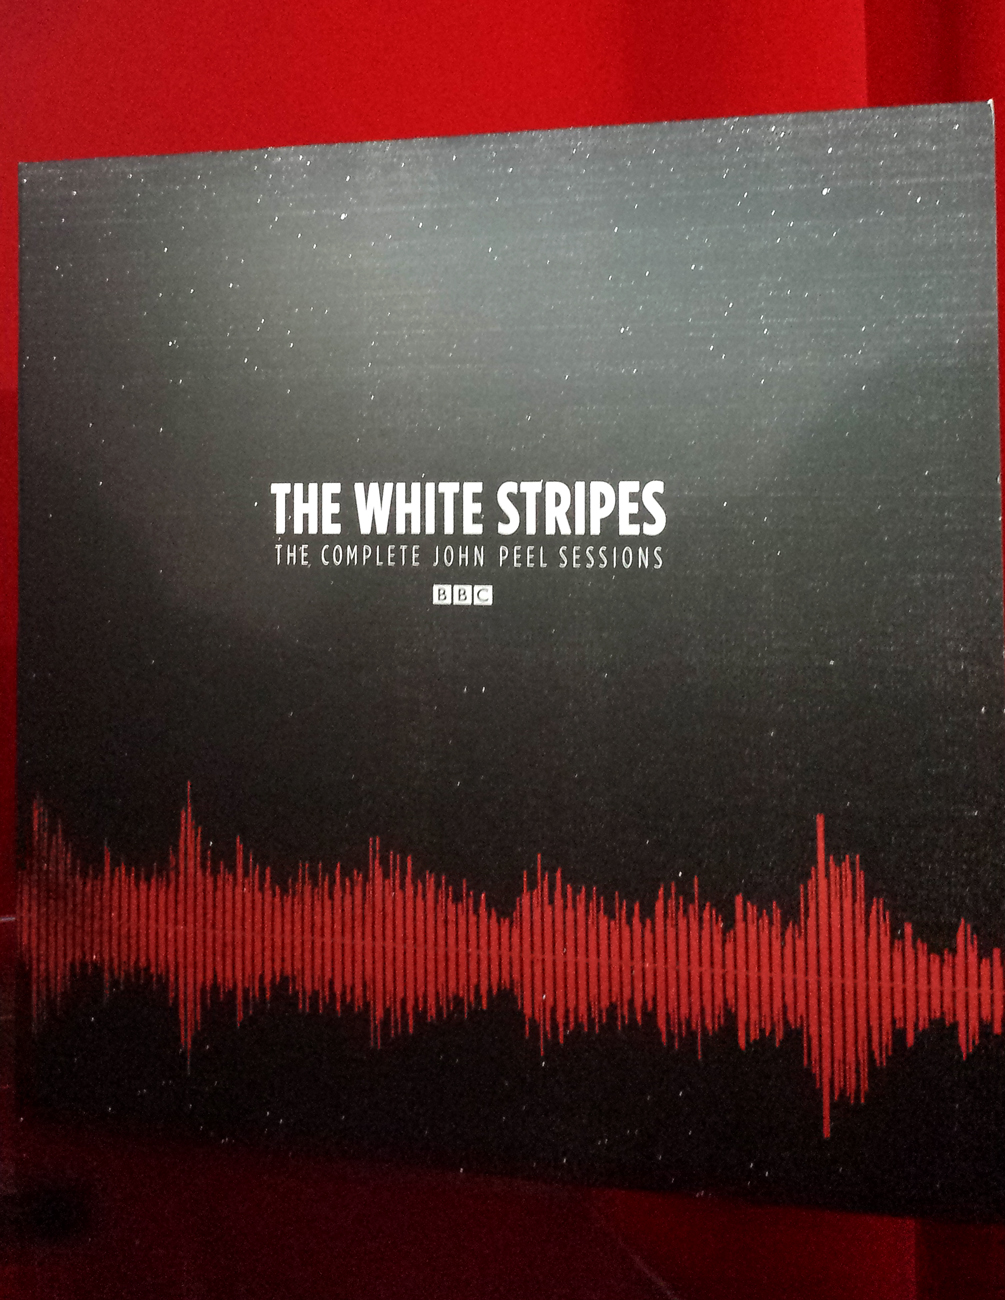 The White Stripes The Complete John Peel Sessions album cover. Photo by: Matthew McGuire